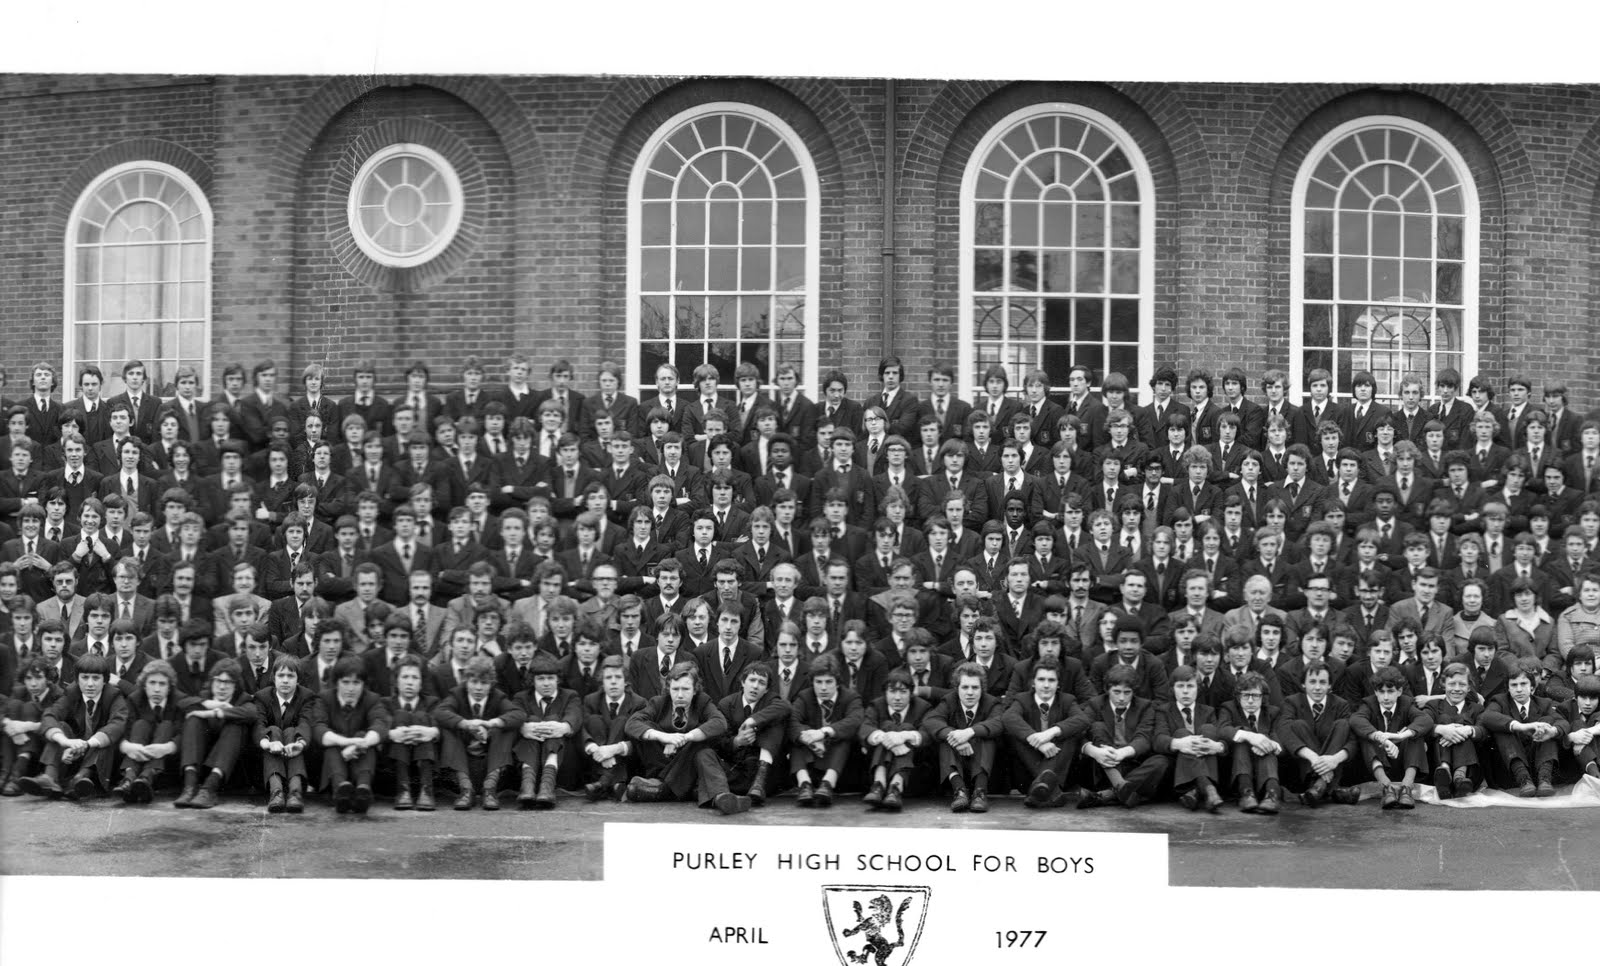 1977 Silver Jubilee Panoramic School Photo Purley right (3)